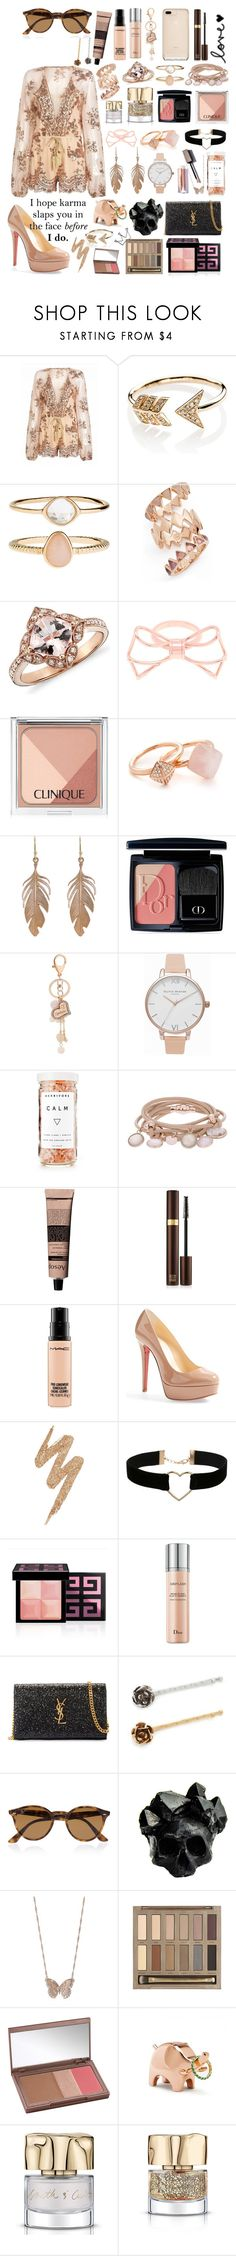 """Karma! #166"" by worldofflowers ❤ liked on Polyvore featuring EF Collection, Accessorize, Tory Burch, Ted Baker, Clinique, Michael Kors, Annette Ferdinandsen, Christian Dior, Olivia Burton and Herbivore"